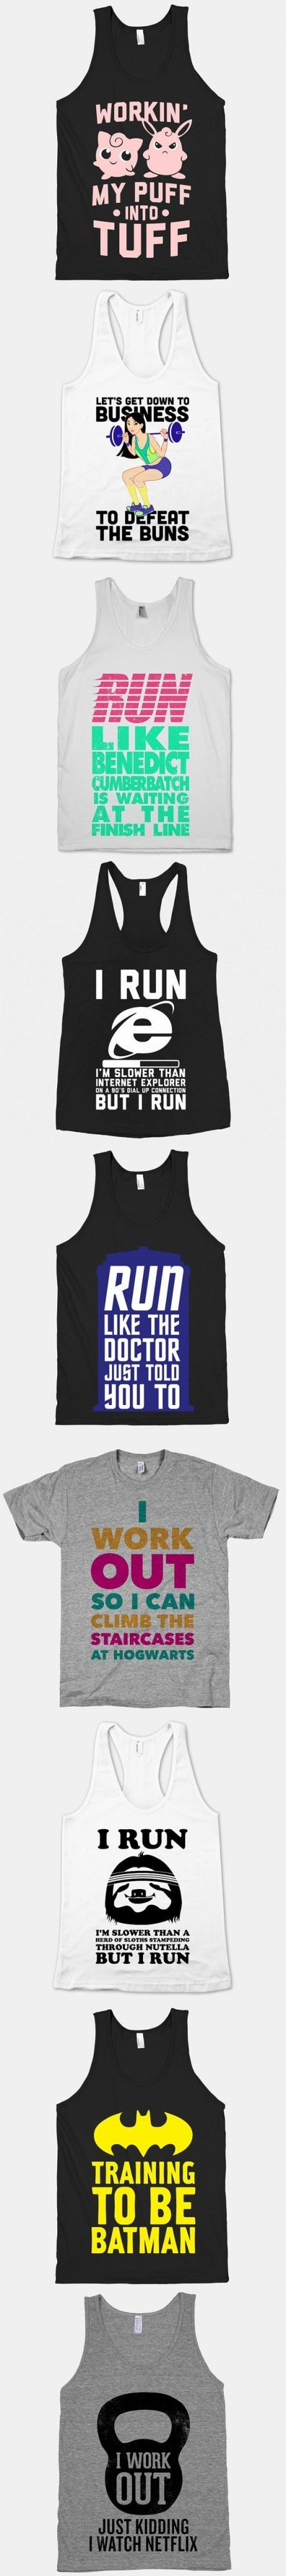 Cool workout shirts-I want one